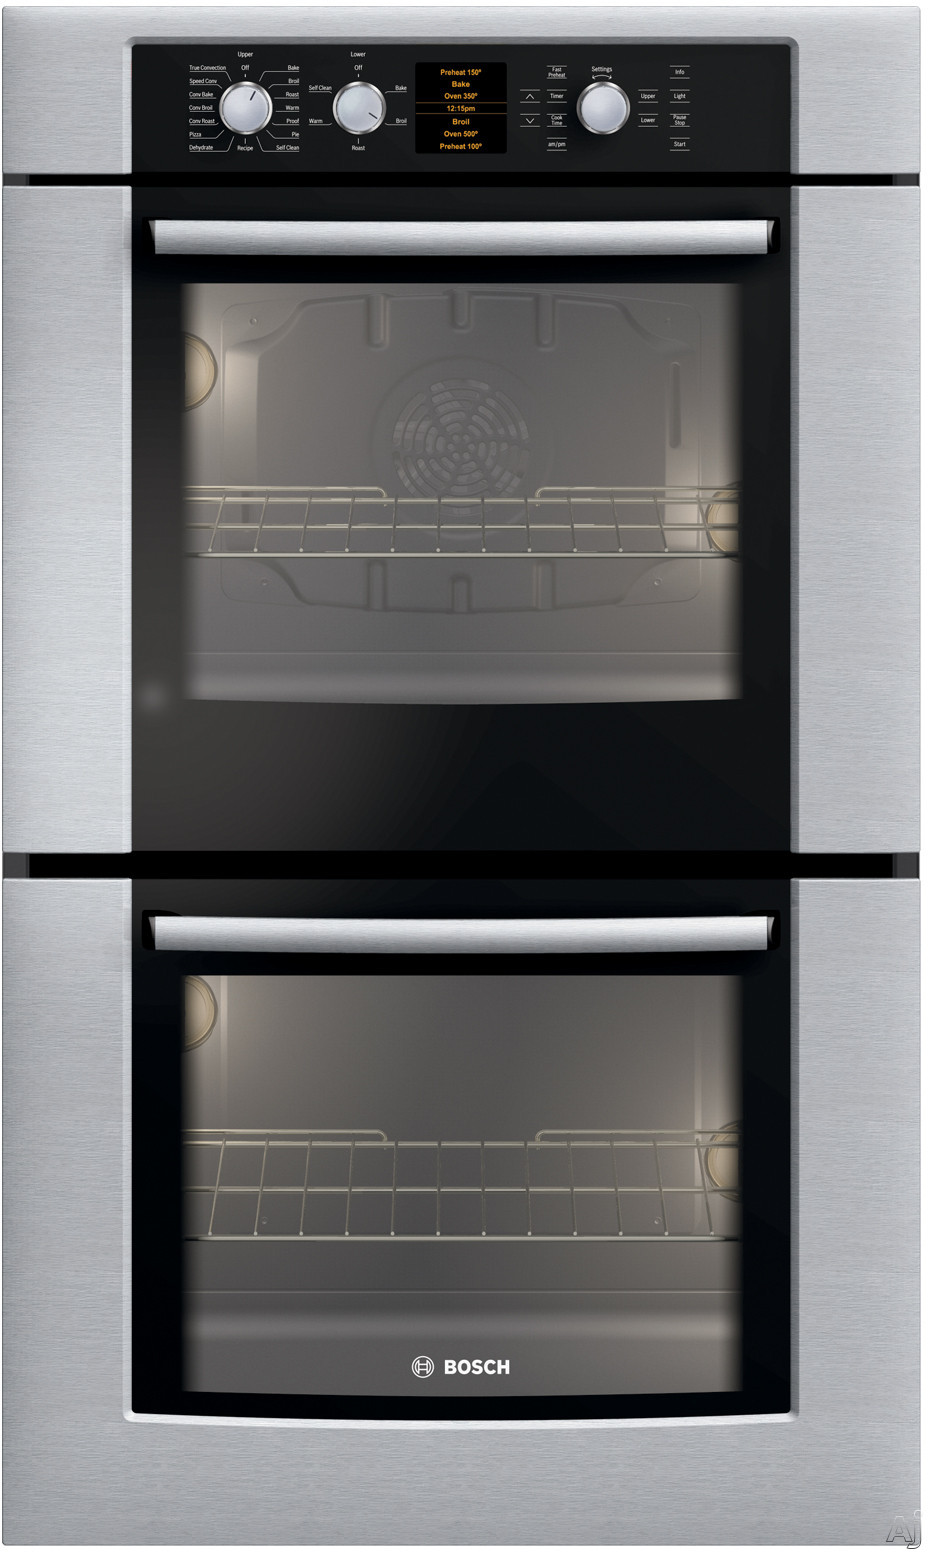 "Bosch 500 Series HBL5620UC 30"" Double Electric Wall Oven With Genuine European Convection In Upper Oven 16 Cooking Modes In Upper Oven Ergonomic Retractable D"